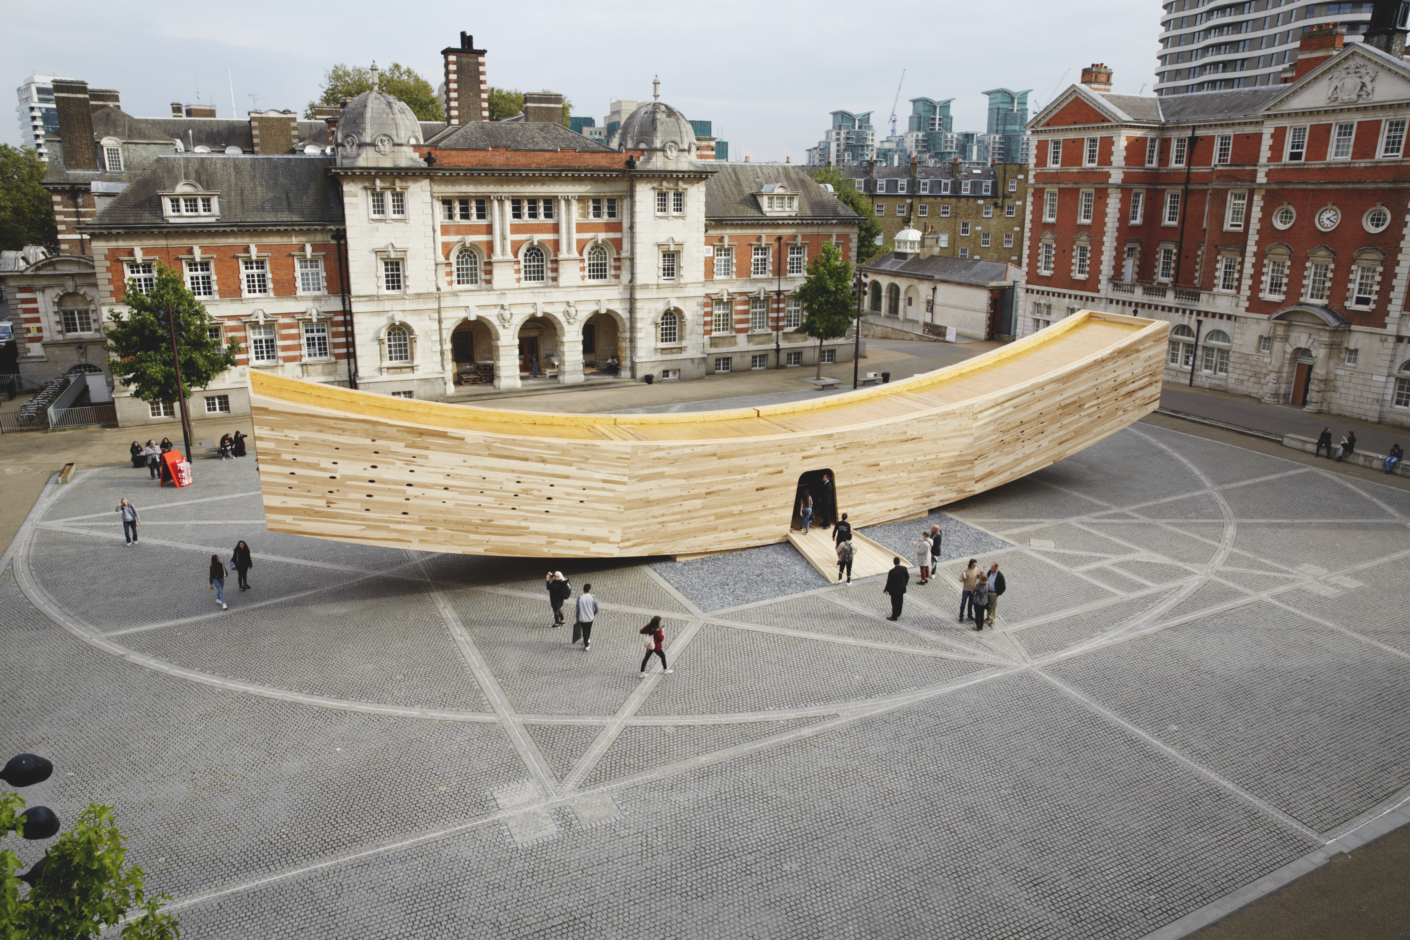 Pavillon The Smile aus Schichtholz von Alison Brooks mit Arup Ass., London  Design Festival 2016, neben Tate Britain